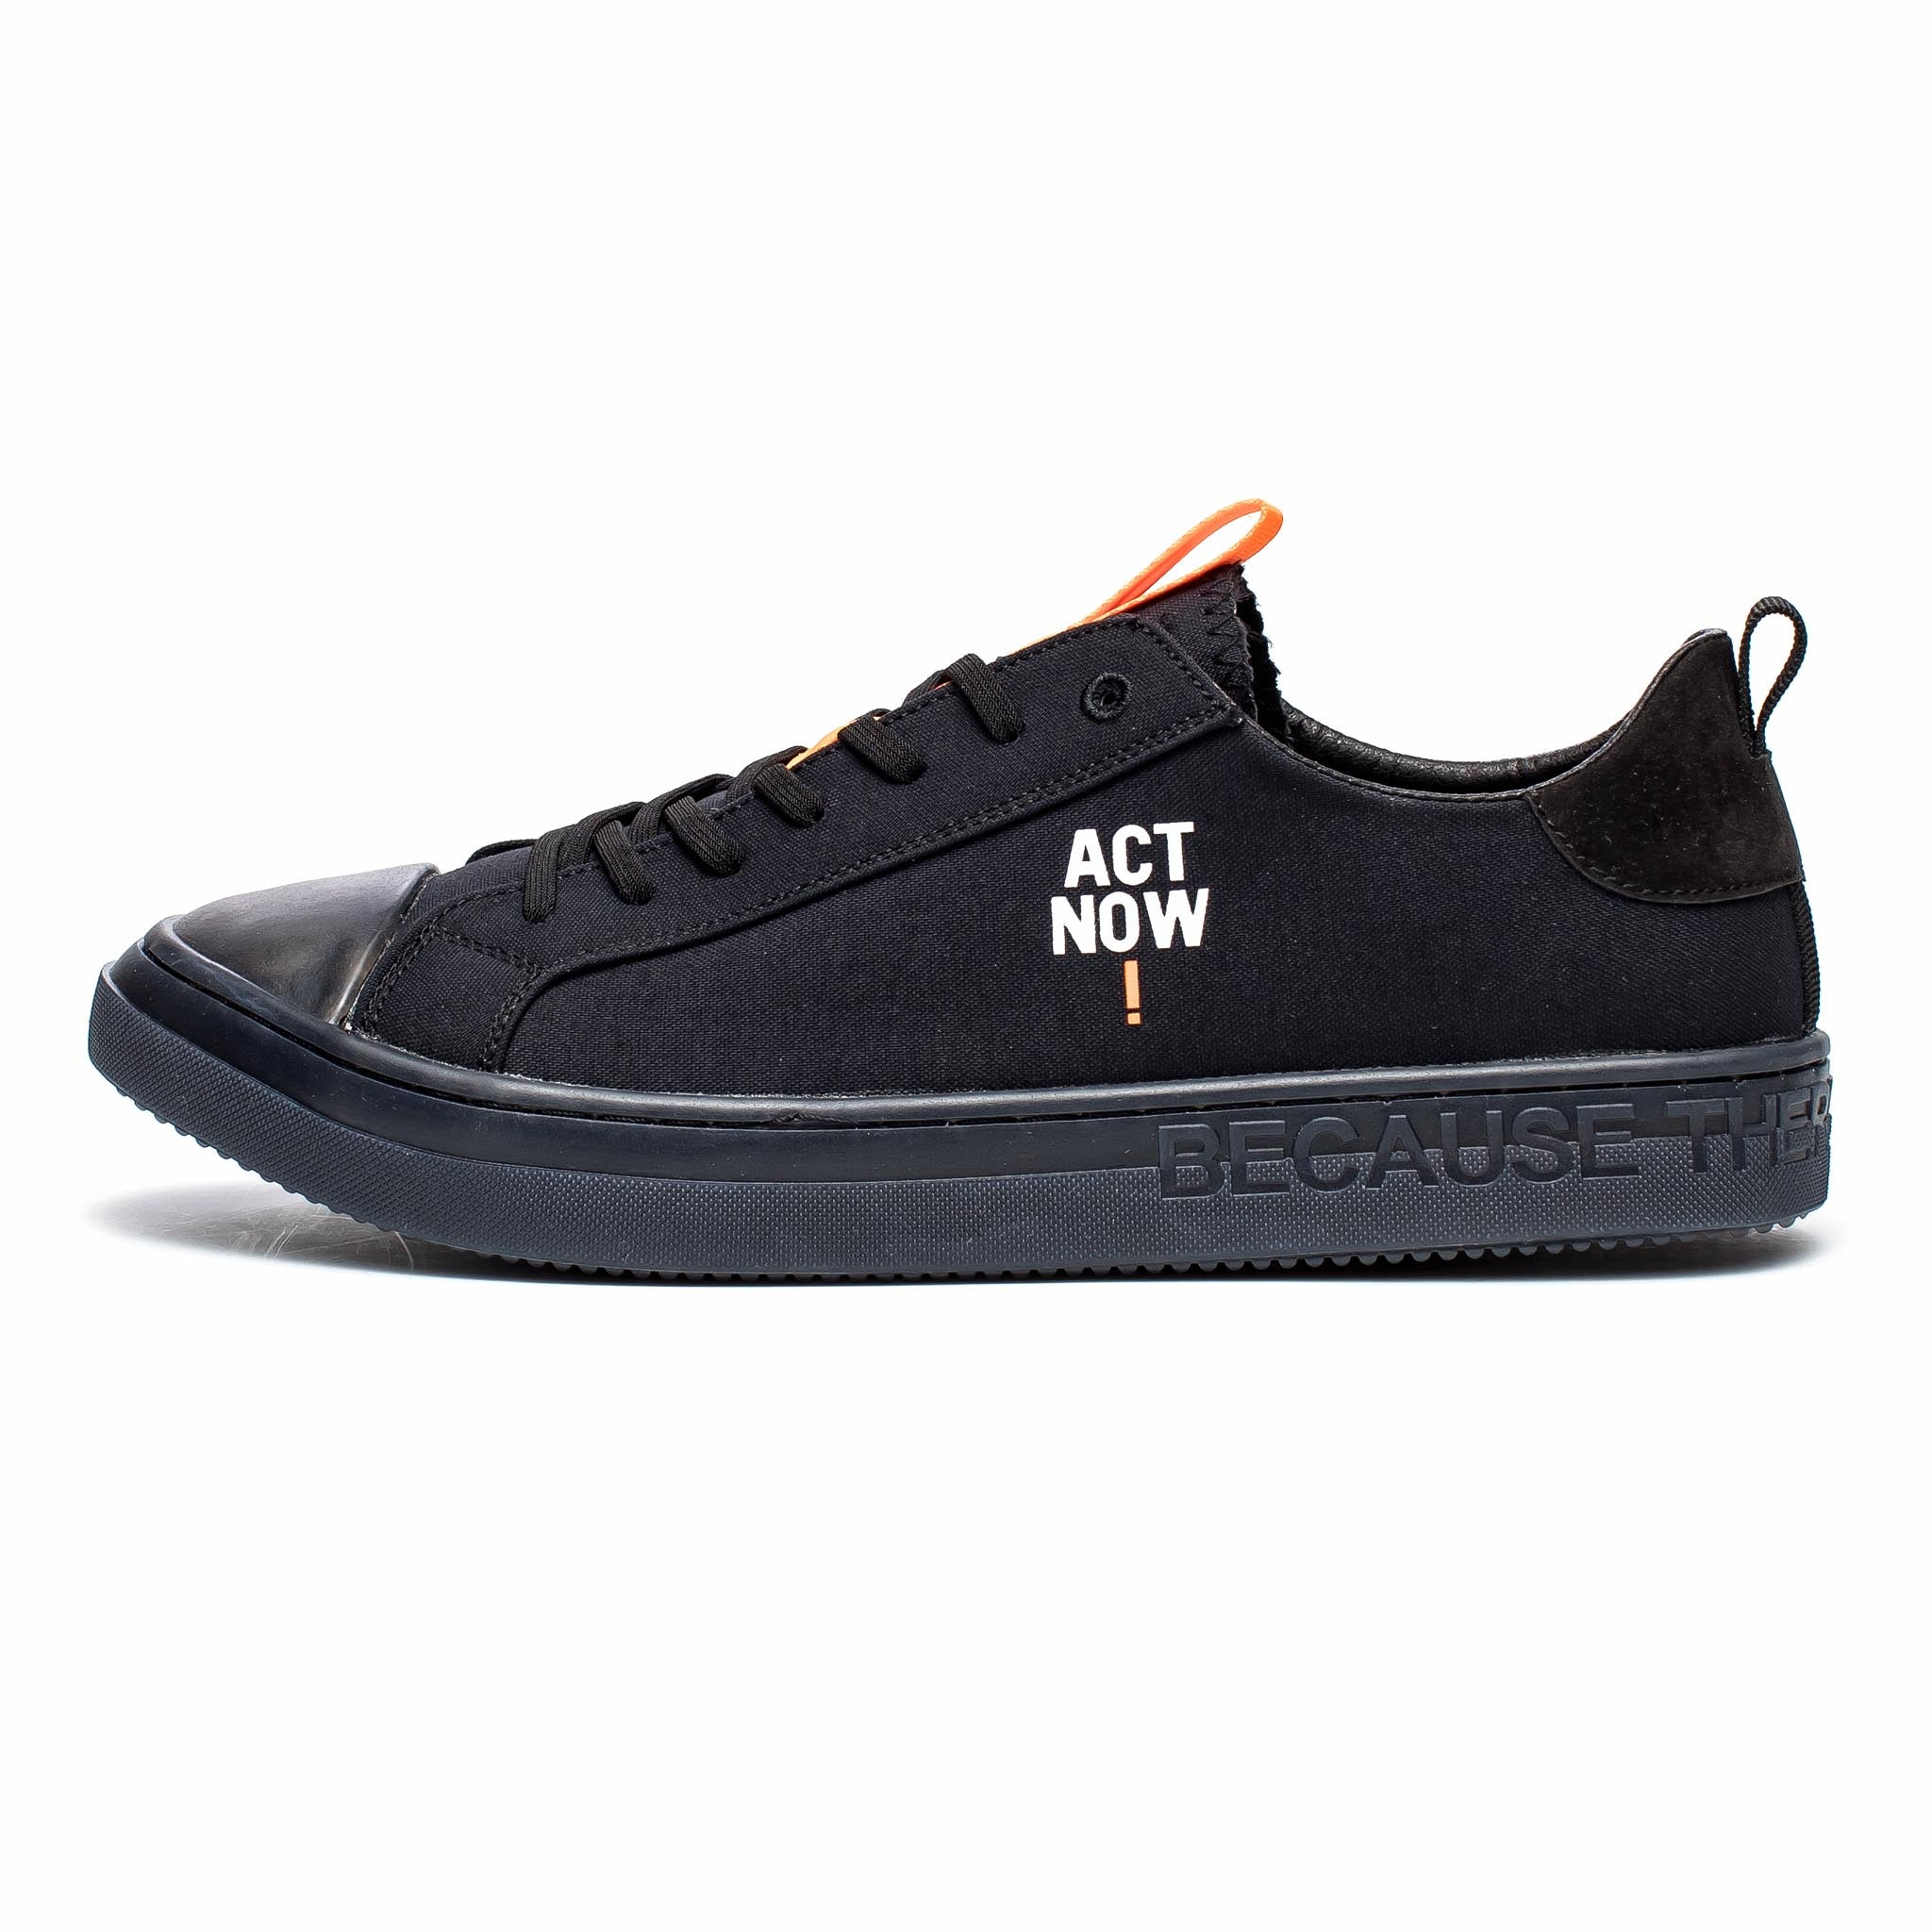 ECOALF Match Low-Top Black